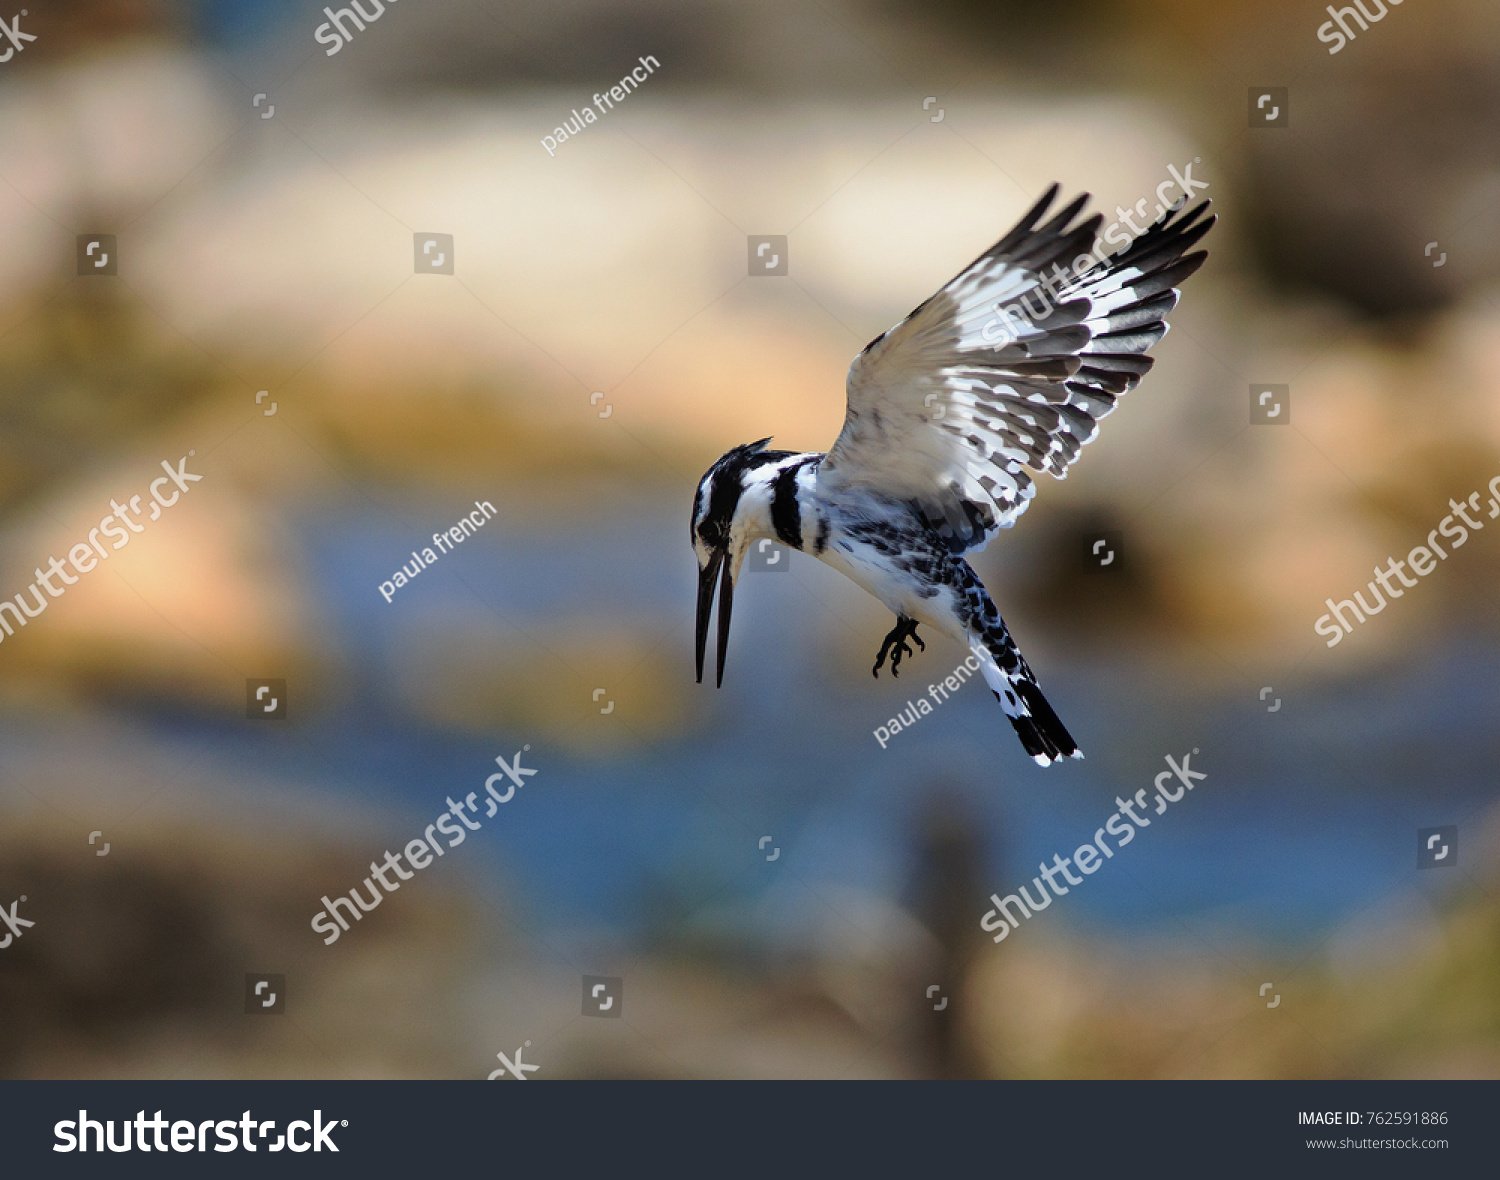 stock-photo-pied-kingfisher-inflight-wit